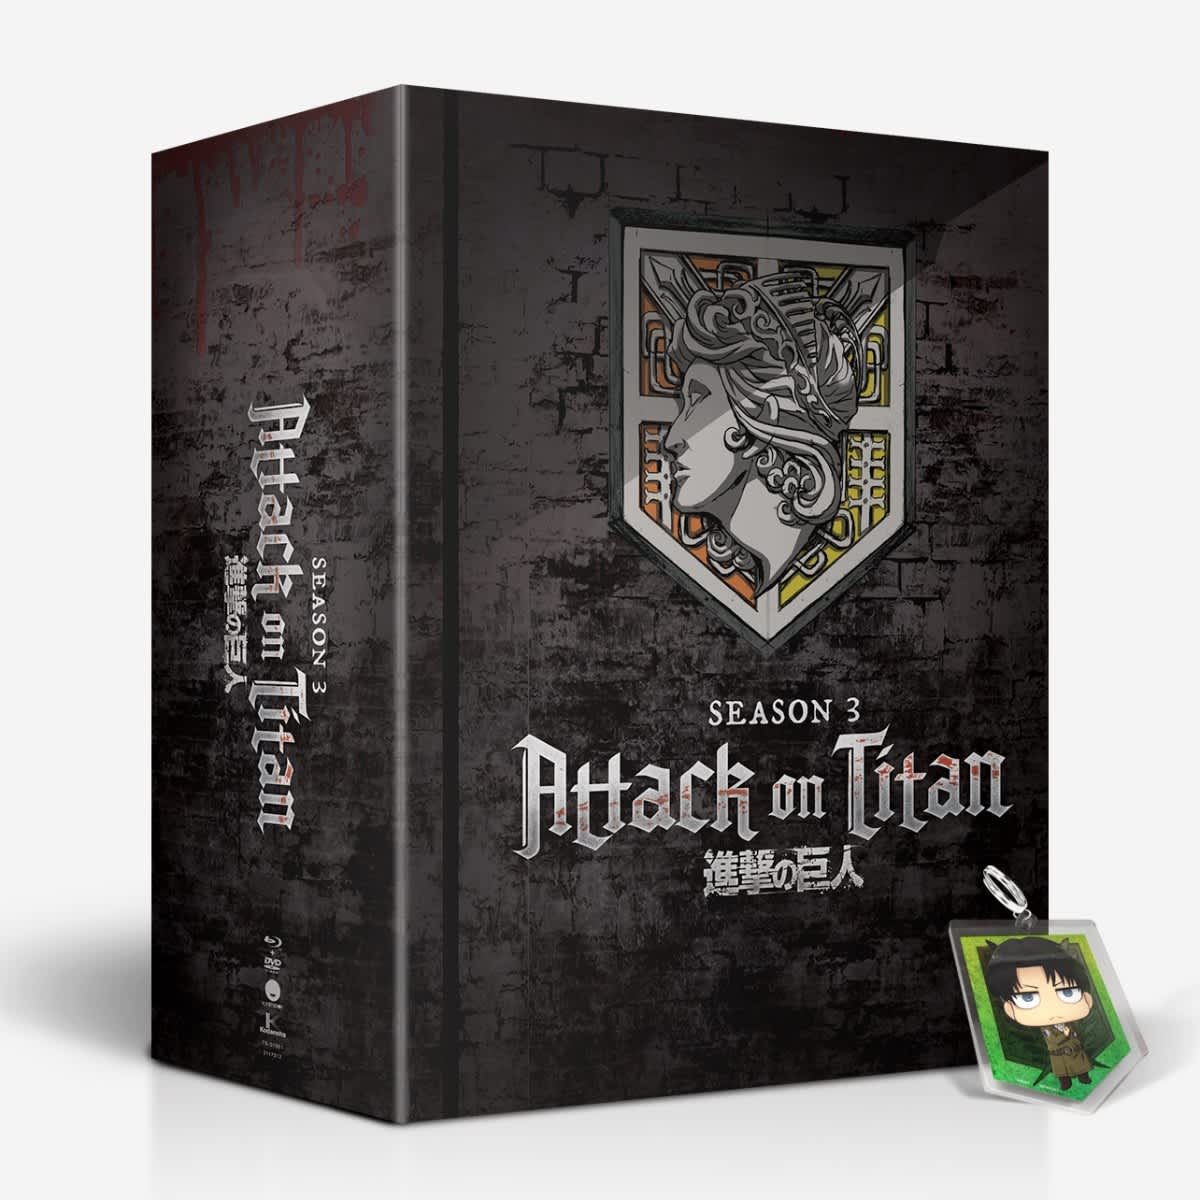 Attack on Titan - Season Three Part One BD/DVD Combo LE + Funimation  Exclusive